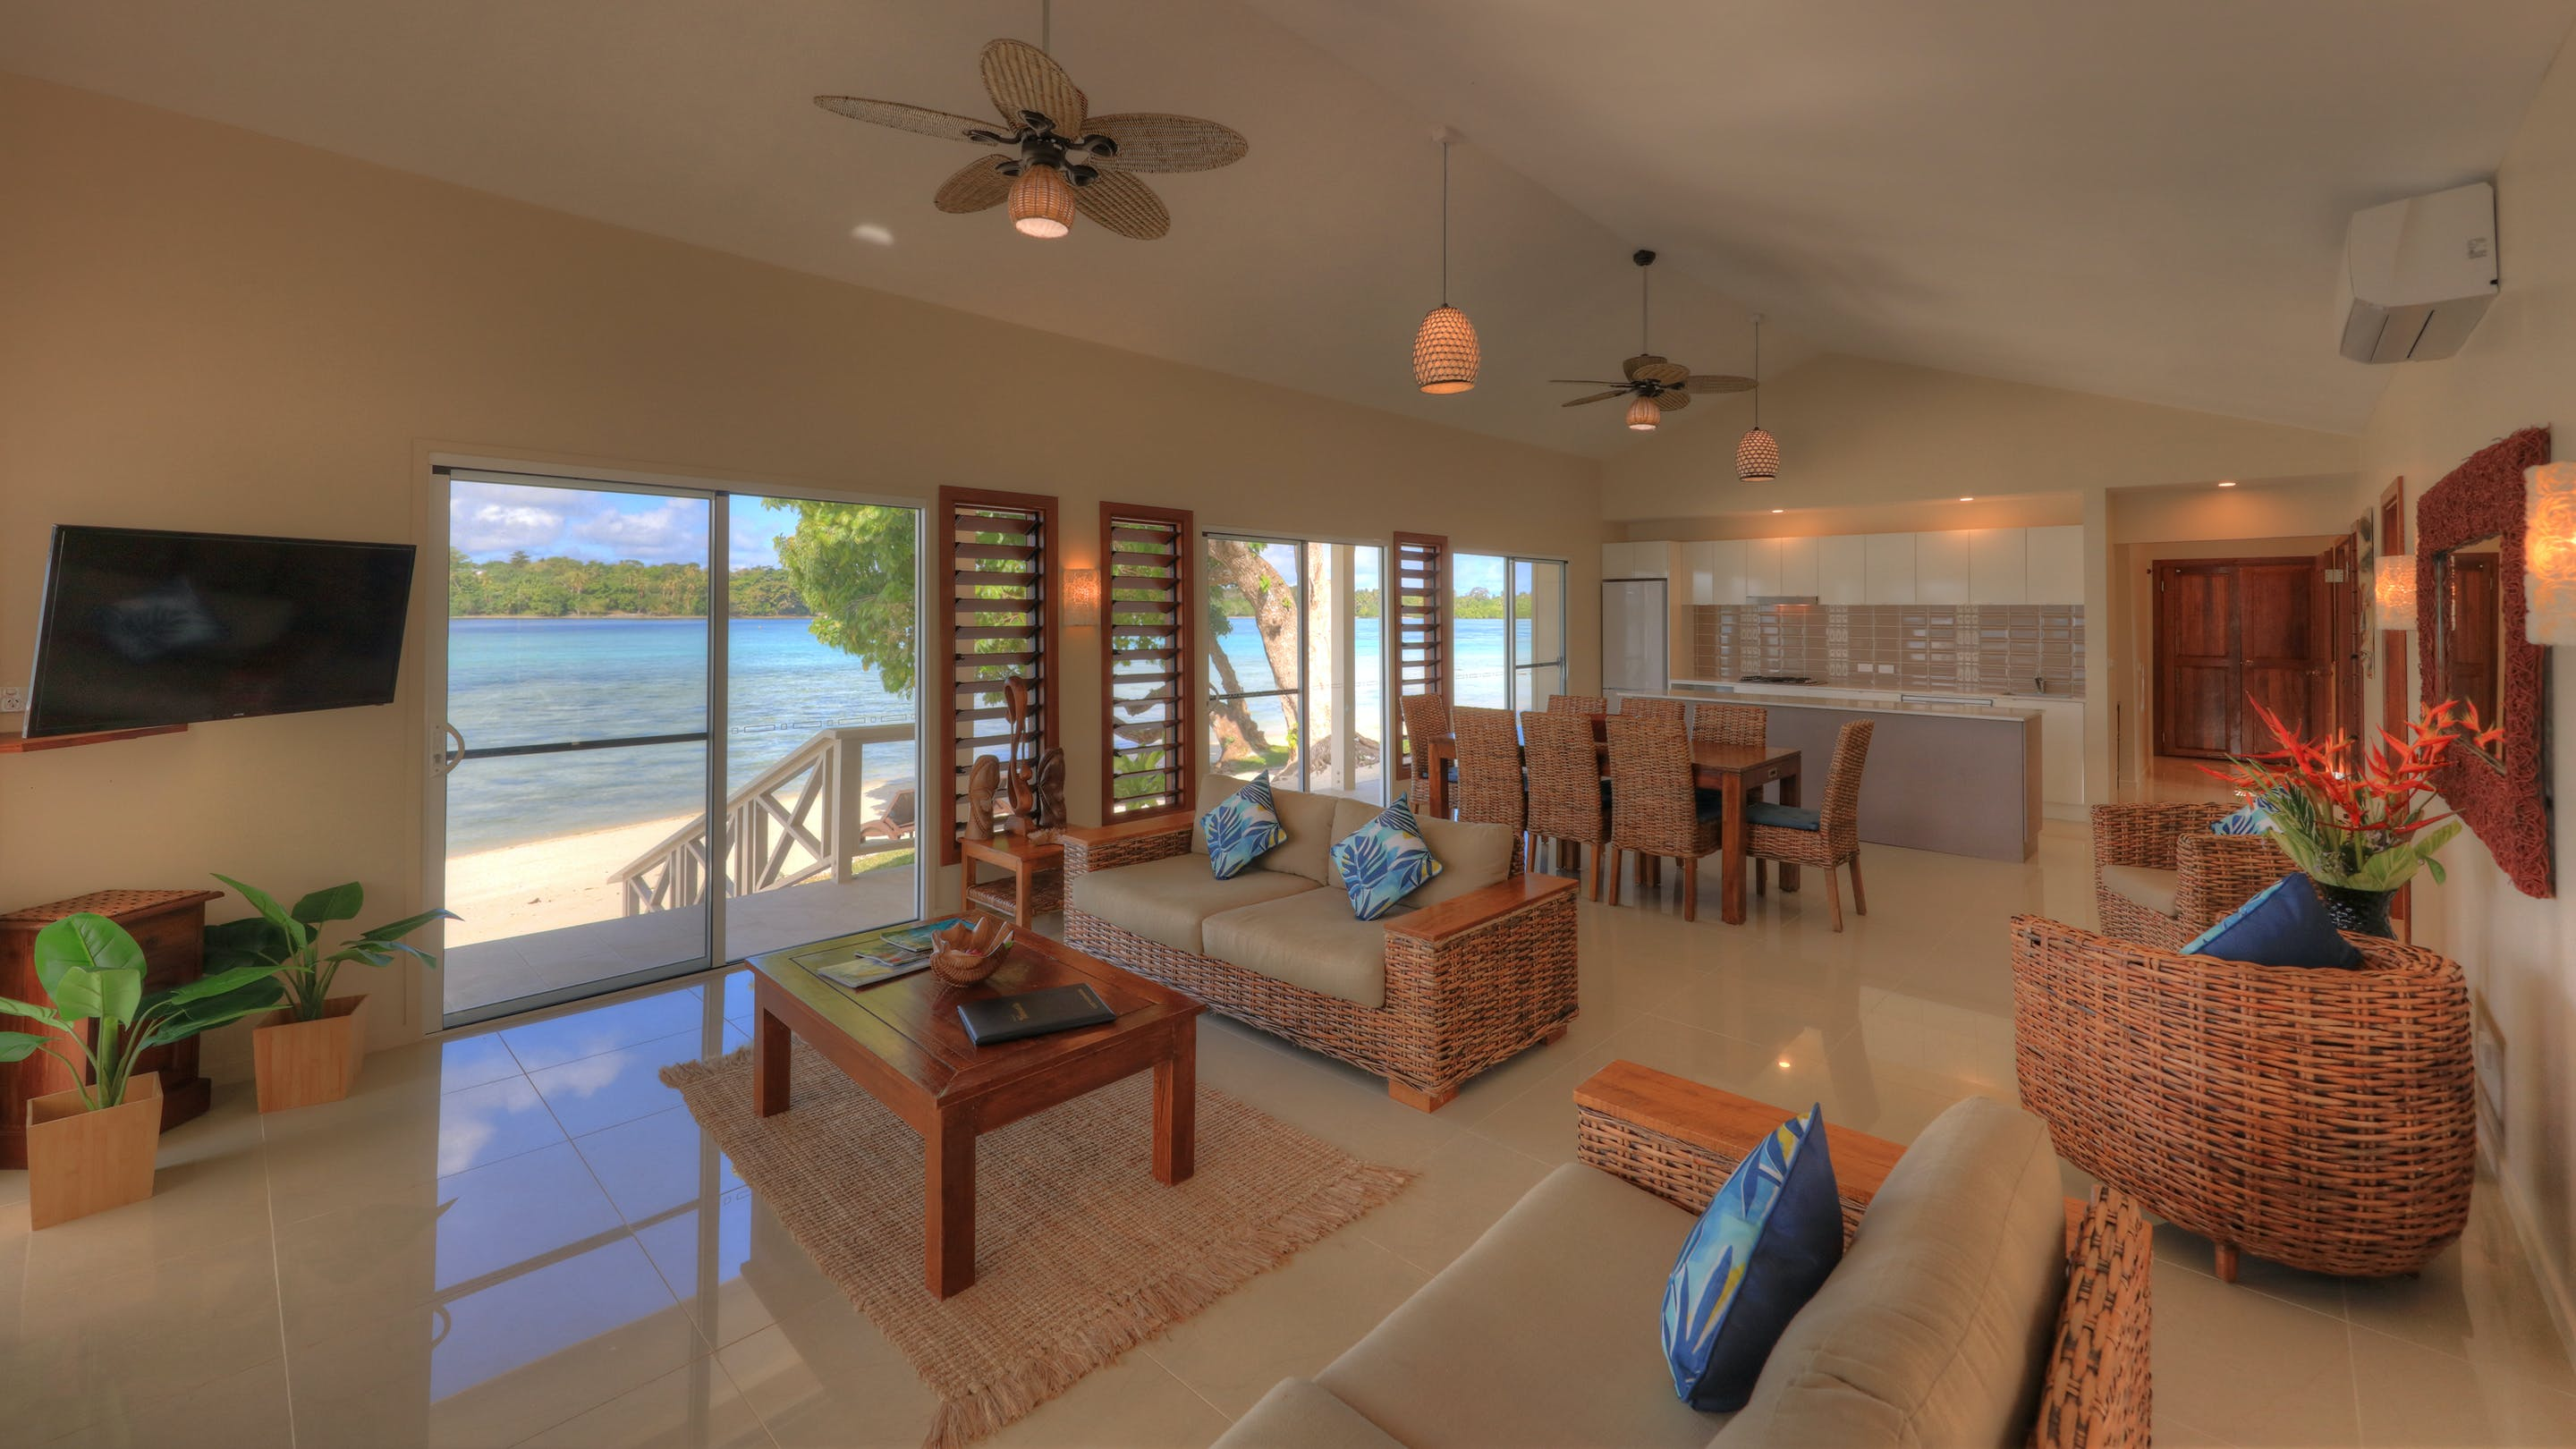 erakor island resort beach cottage #erakorislandresort #tropicalislandholiday erakor island resort beach cottage lounge